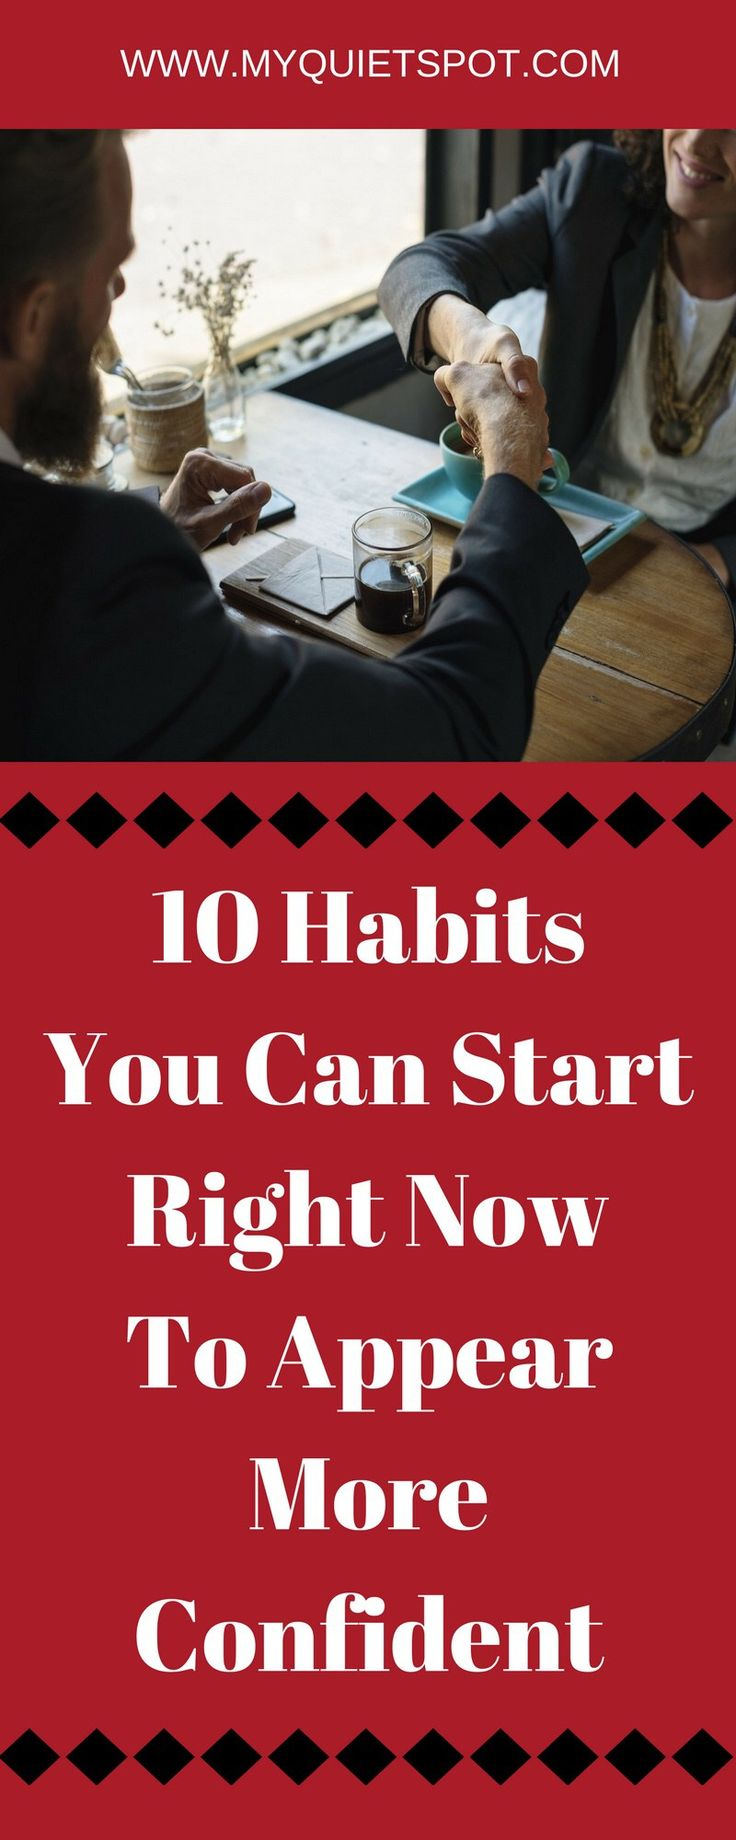 10 Habits You Can Start Right Now To Appear More Confident ; Increase your self confidence level with these 10 simple habits